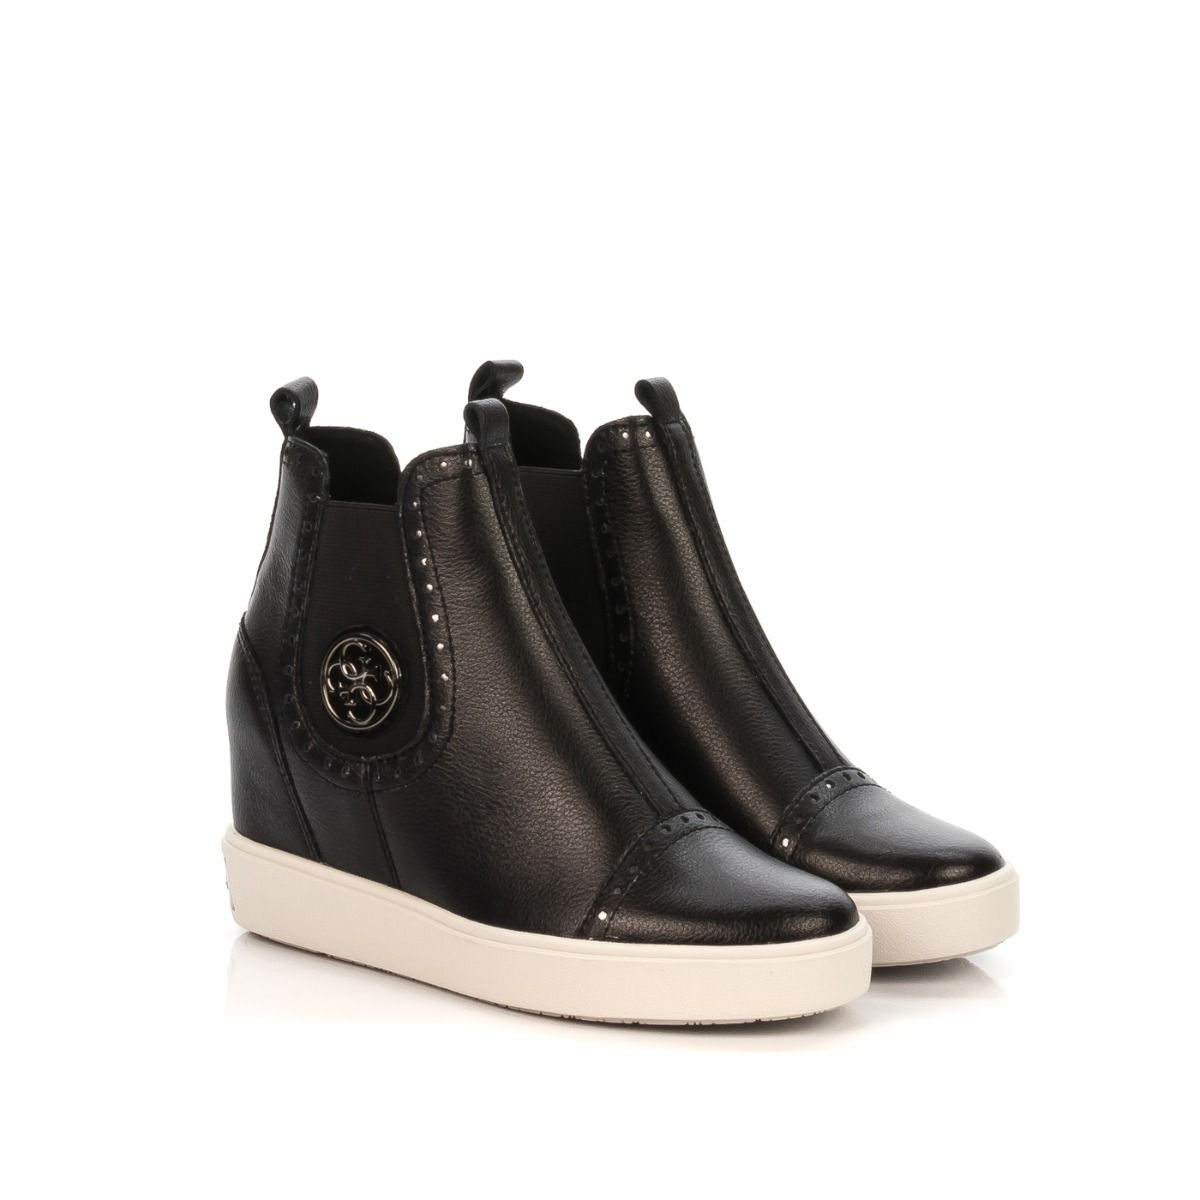 GUESS BEATLES DONNA ZEPPA FRD3 NERO